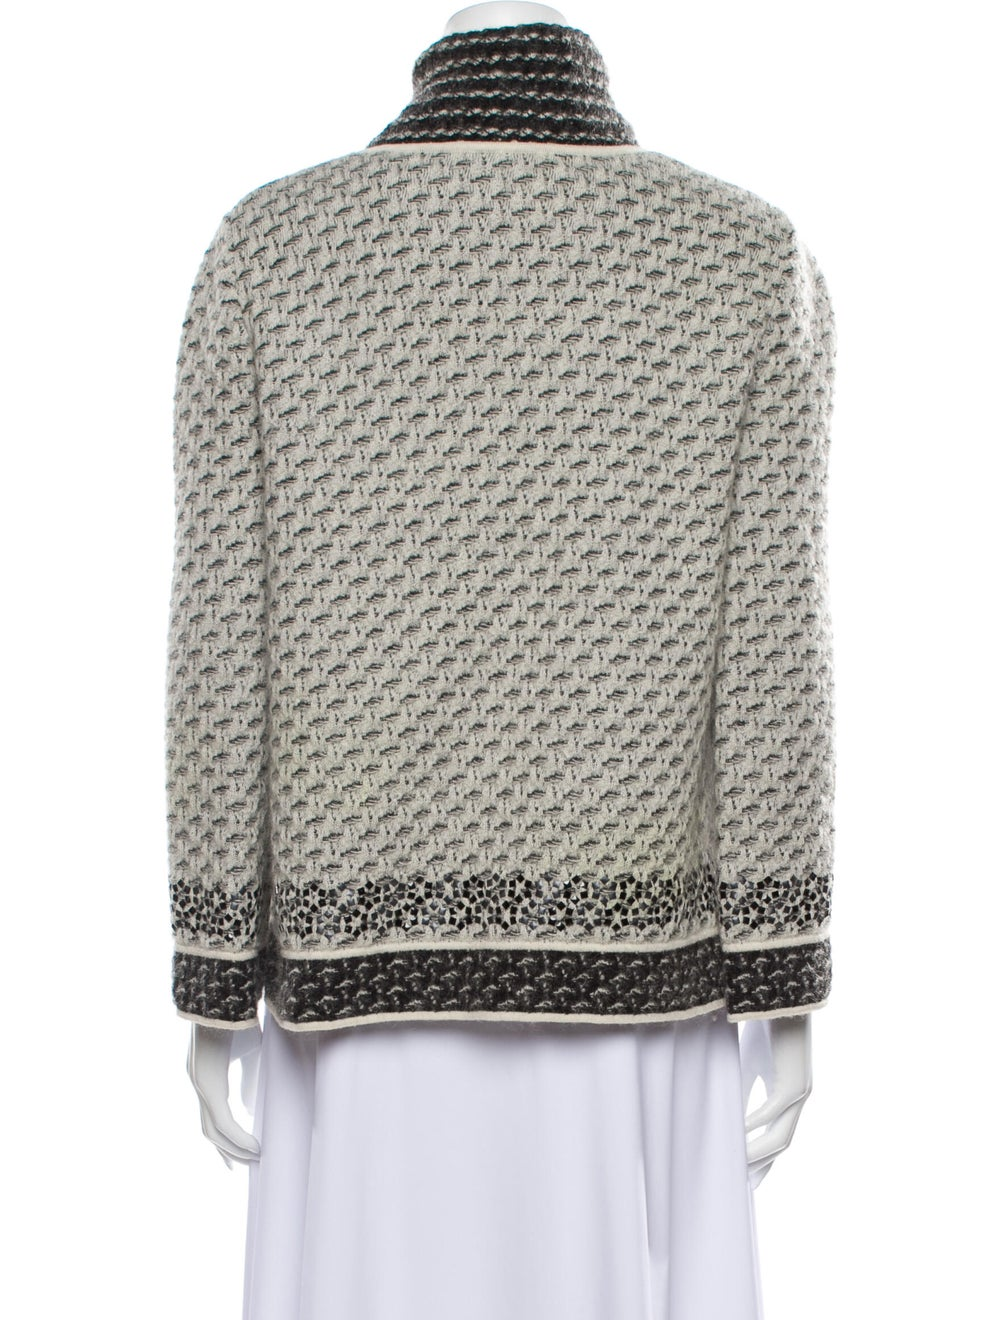 Chanel 2010 Tweed Pattern Cape - image 3